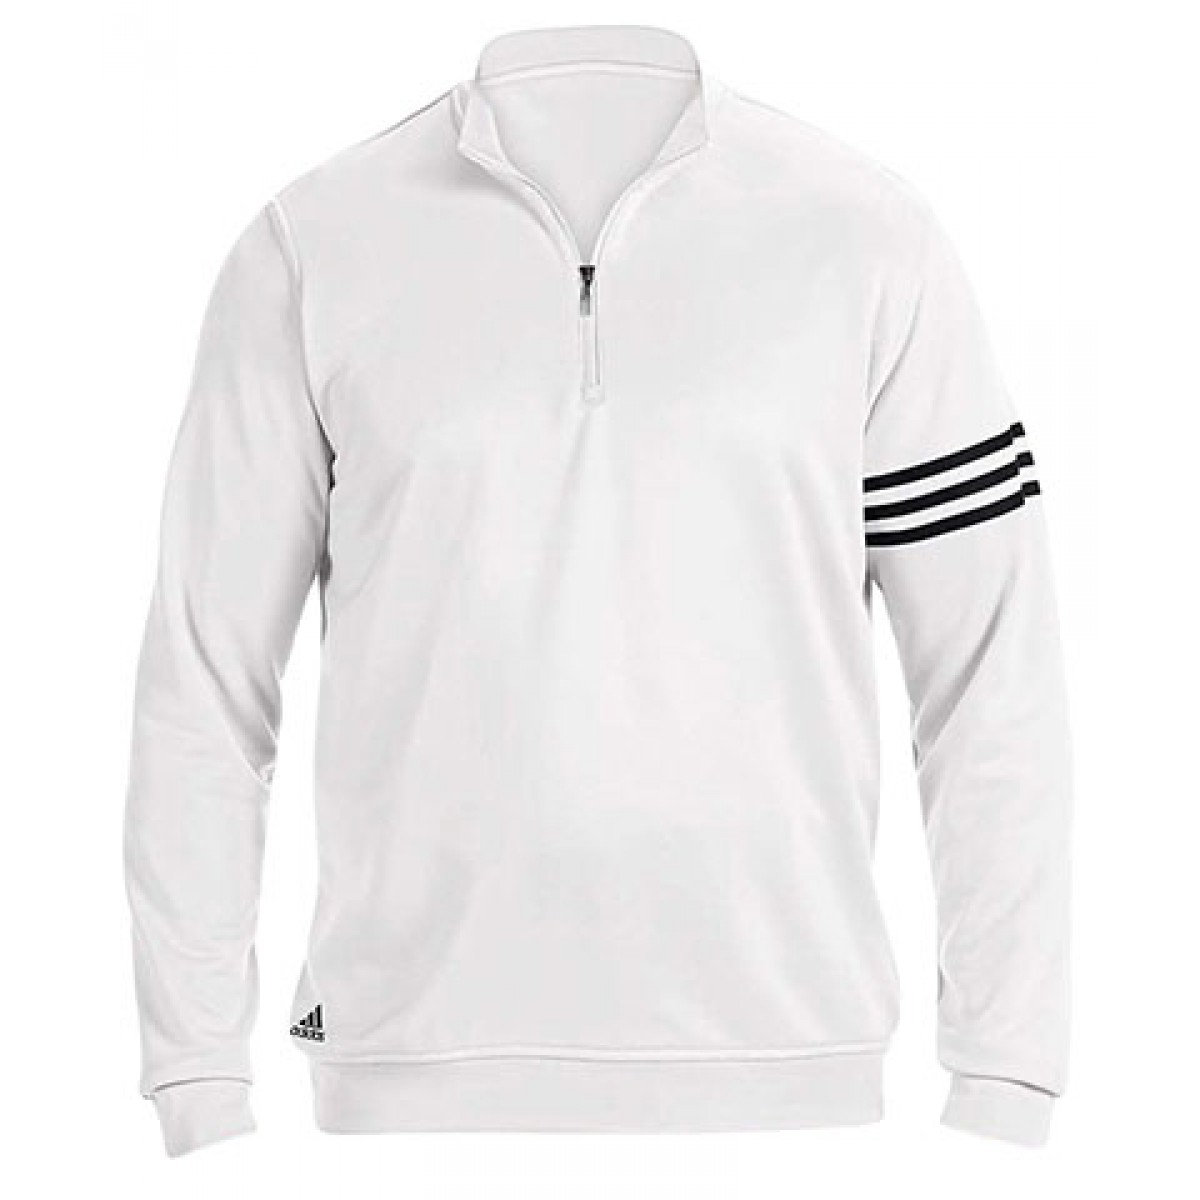 Adidas Men's 3-Stripes Pullover-White-S